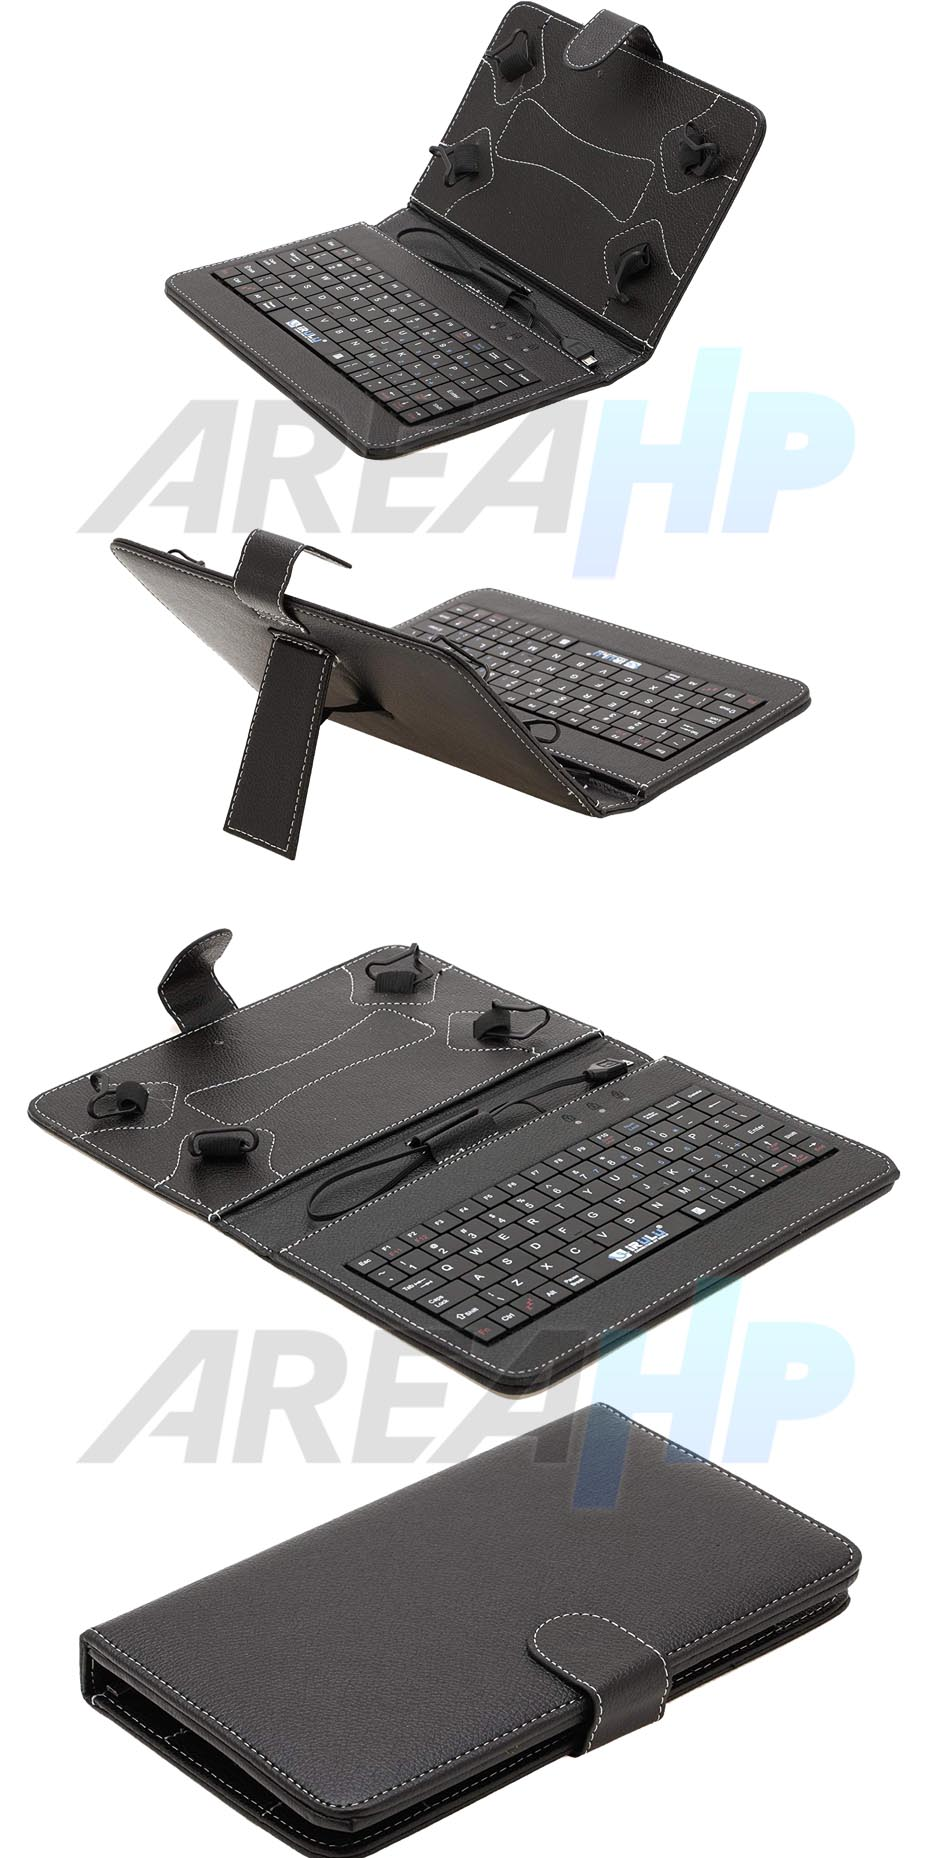 Universal Keyboard Case for Tablet Overview